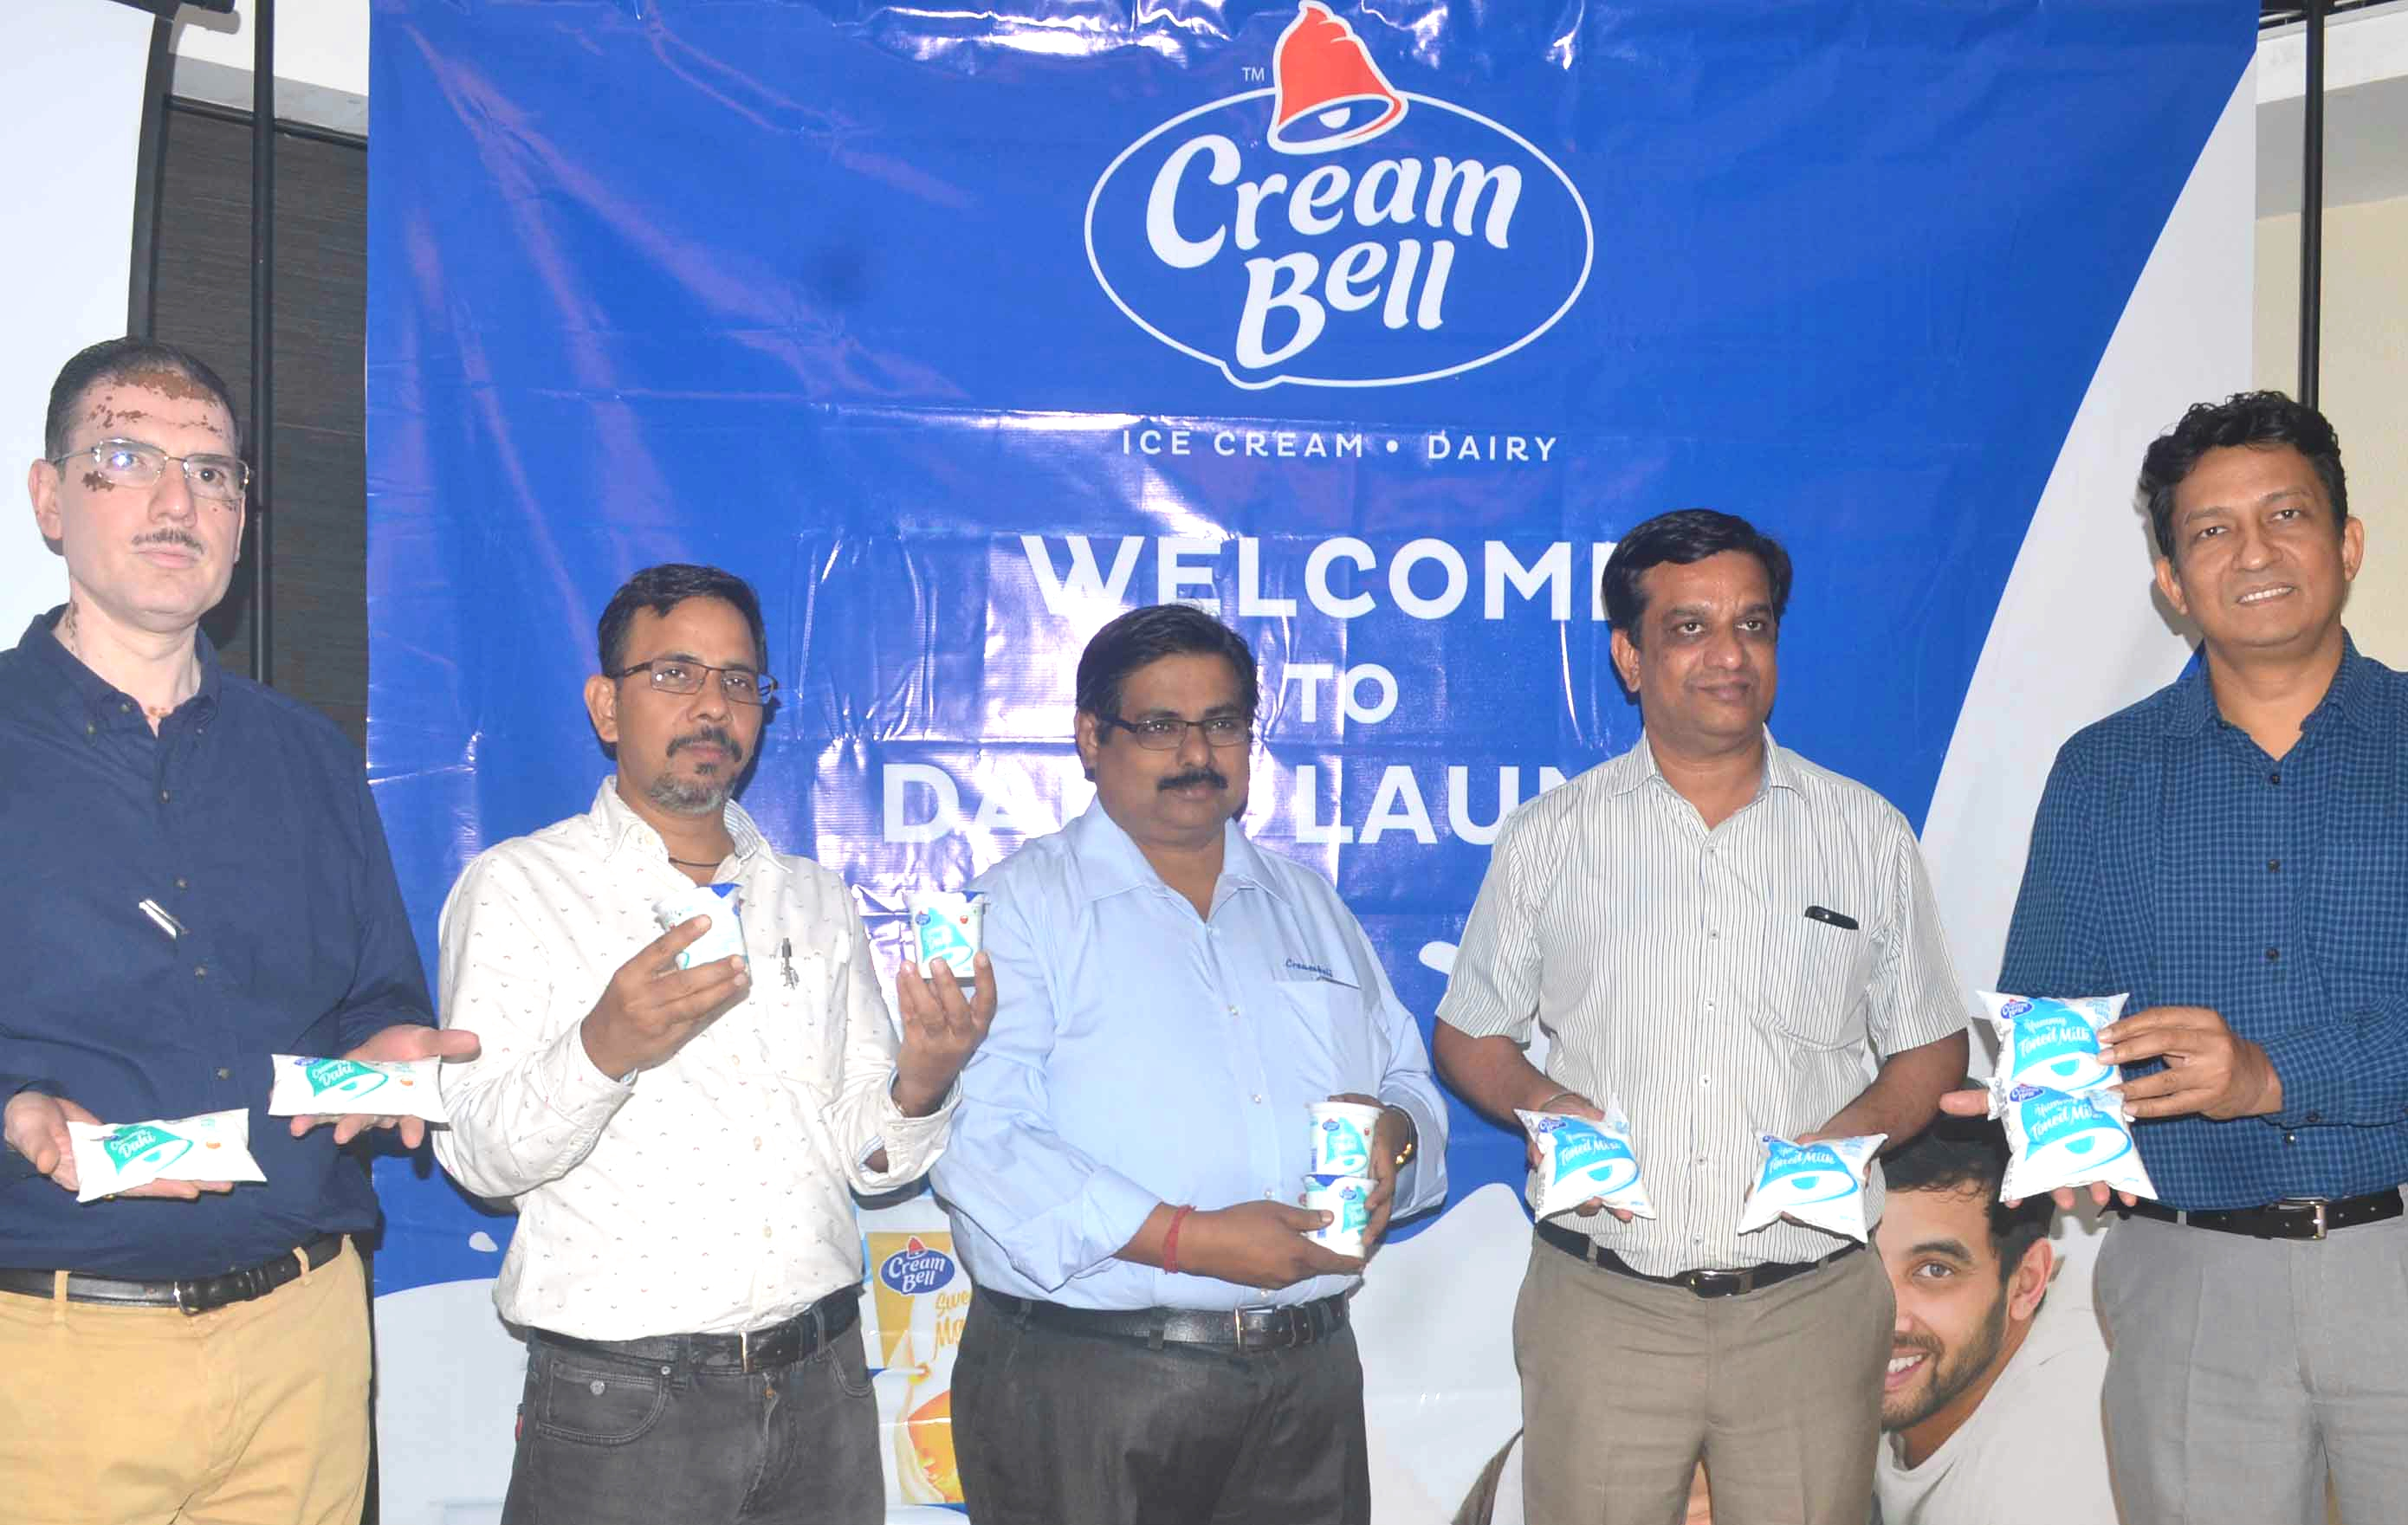 Creambell sets up Biggest Dairy in Eastern India : Plans to launch a slew of milk based products